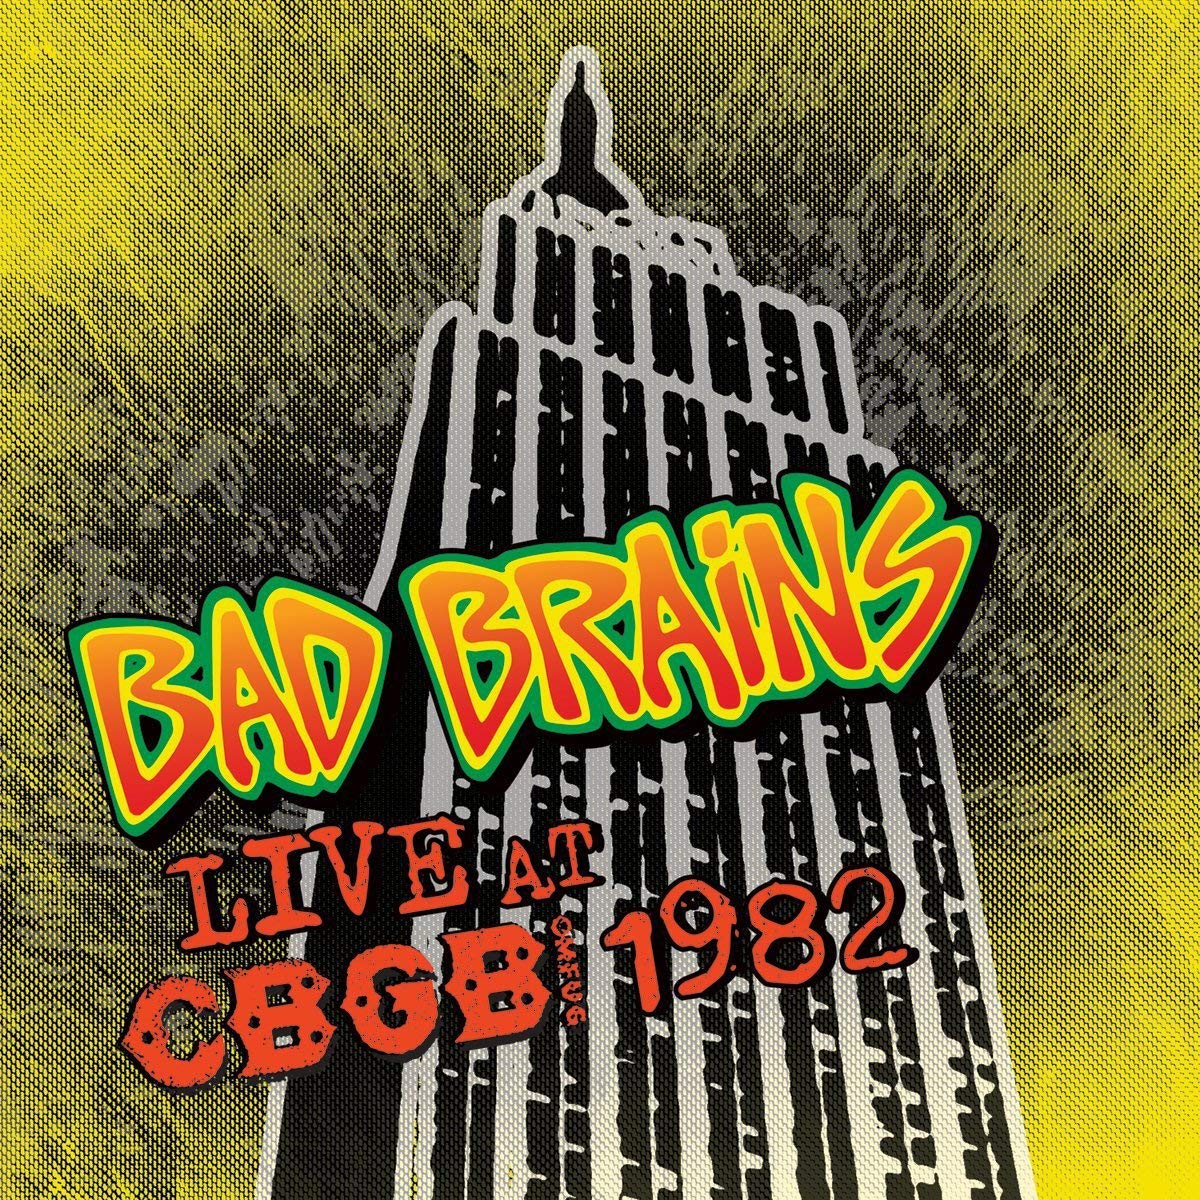 BAD BRAINS - LIVE AT CBGB'S 1982 $20 @ 2010 MVD Audio / CBGB